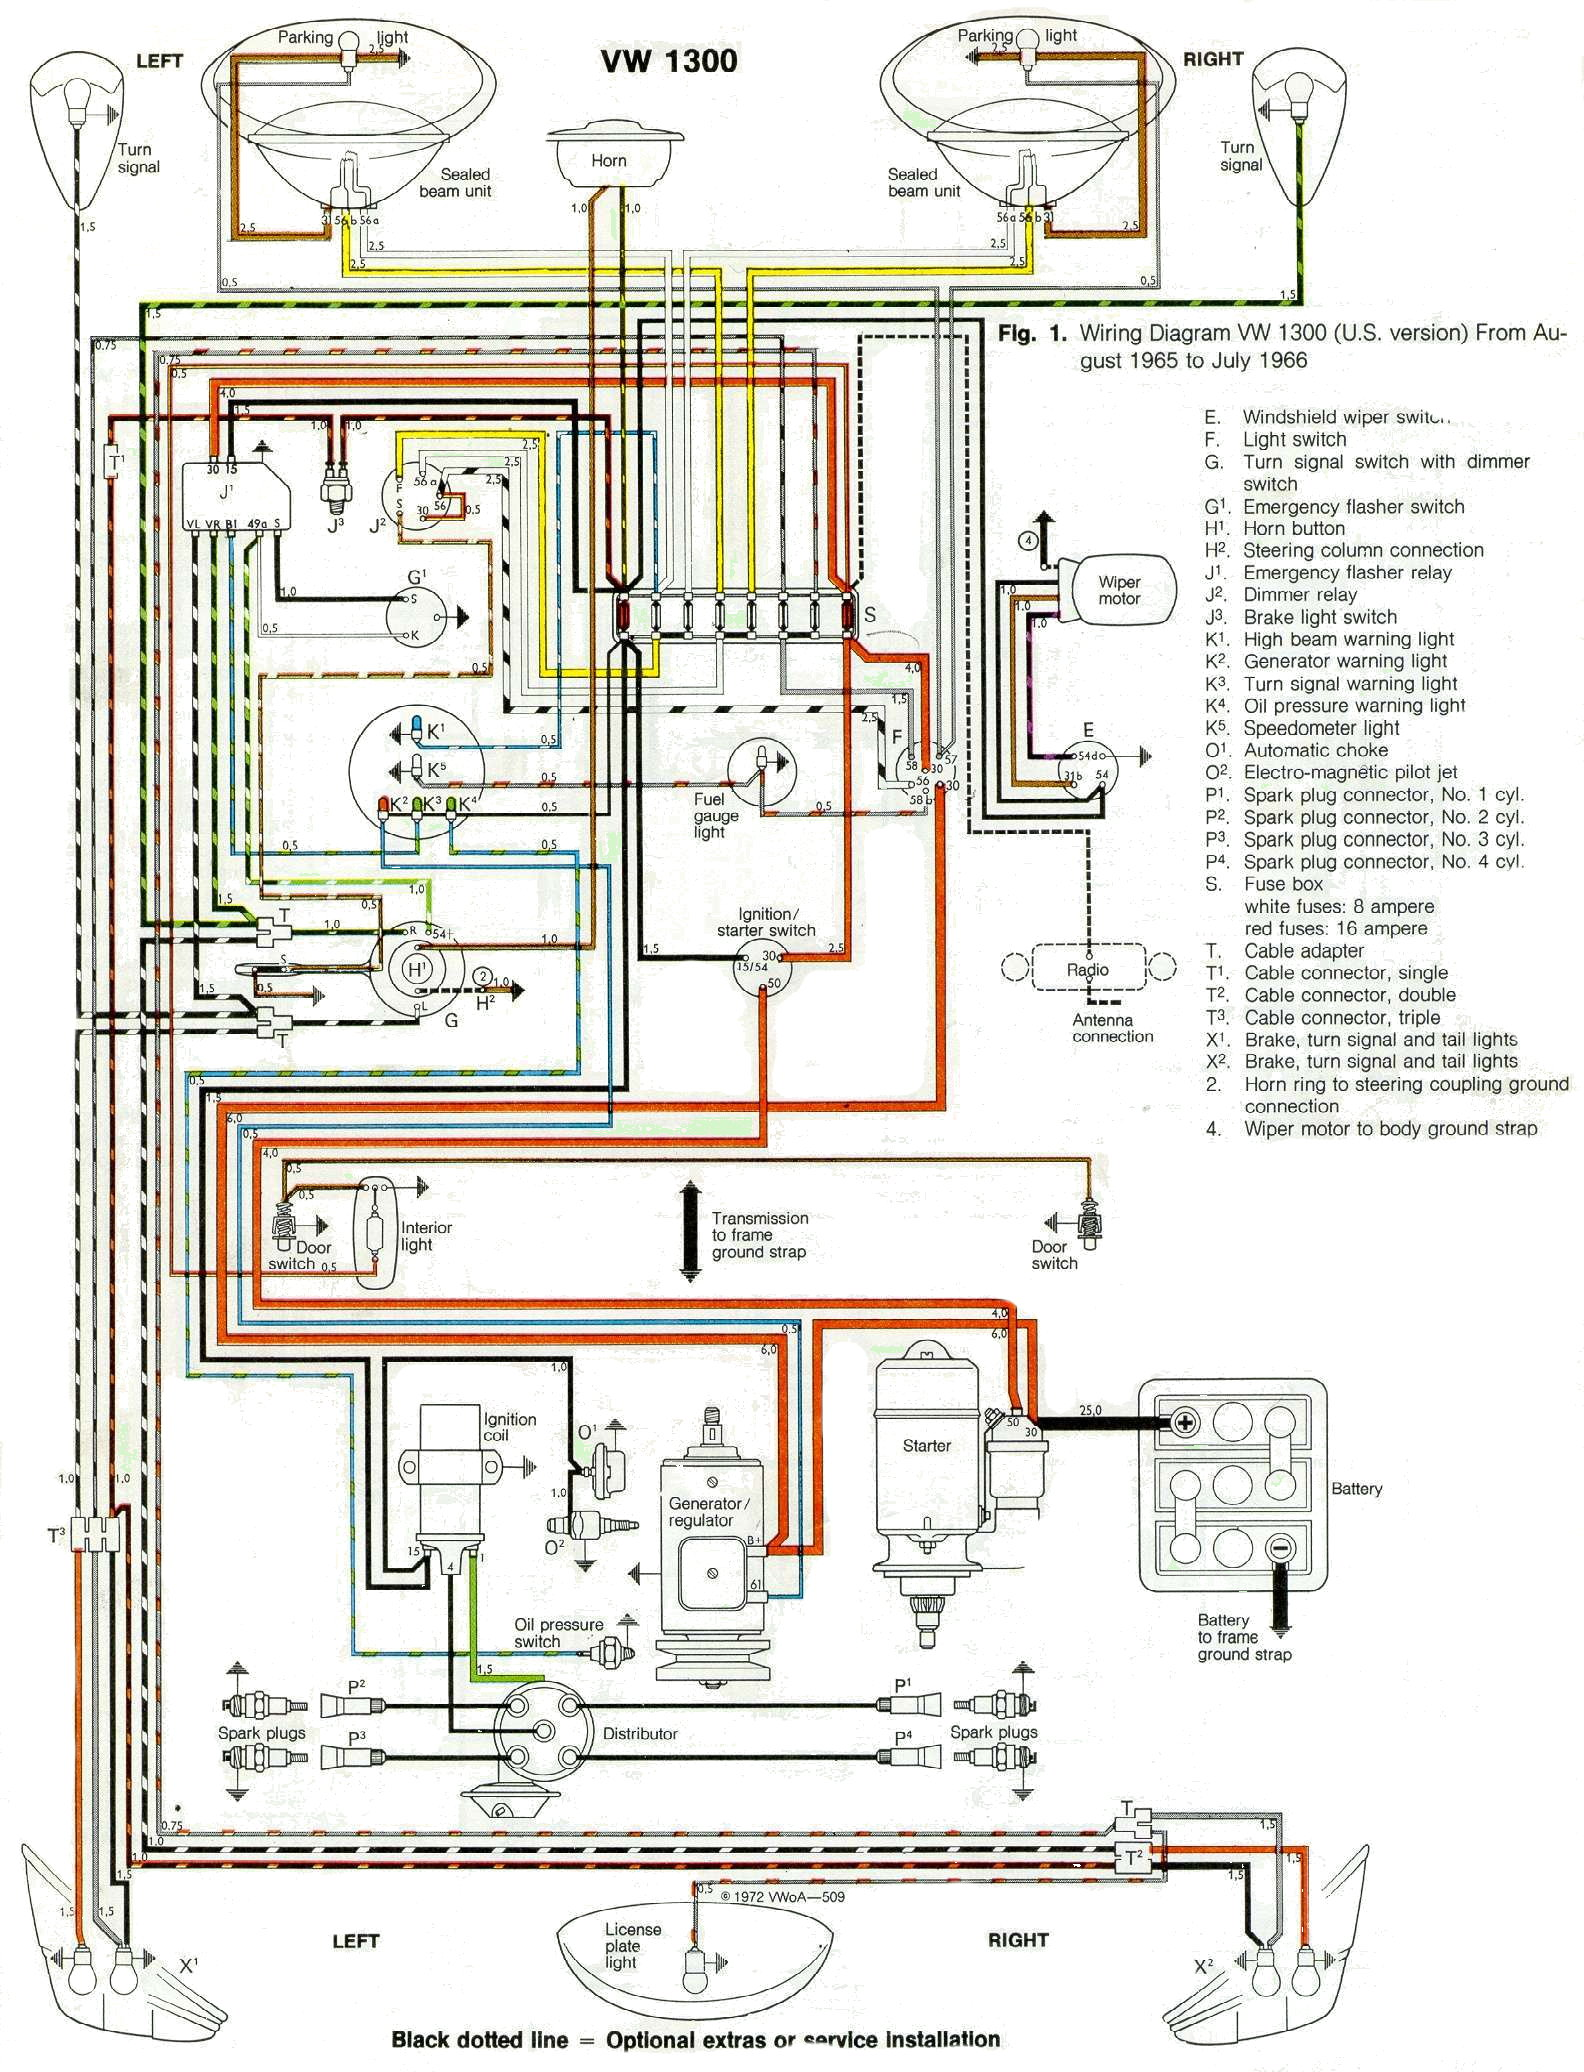 1966 Wiring free wiring diagrams \u2022 205 ufc co 1999 vw beetle wiring diagram at n-0.co